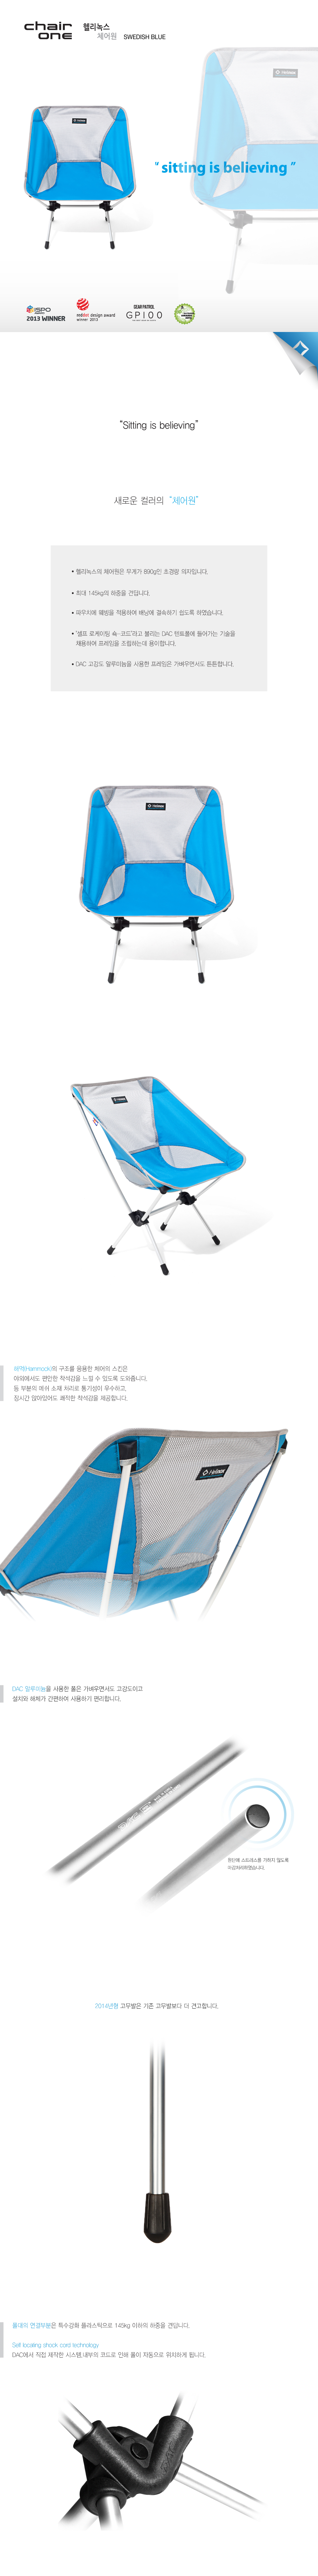 20160713-Helinox_chair-one_상품페이지_SWIDISH-BLUE.jpg